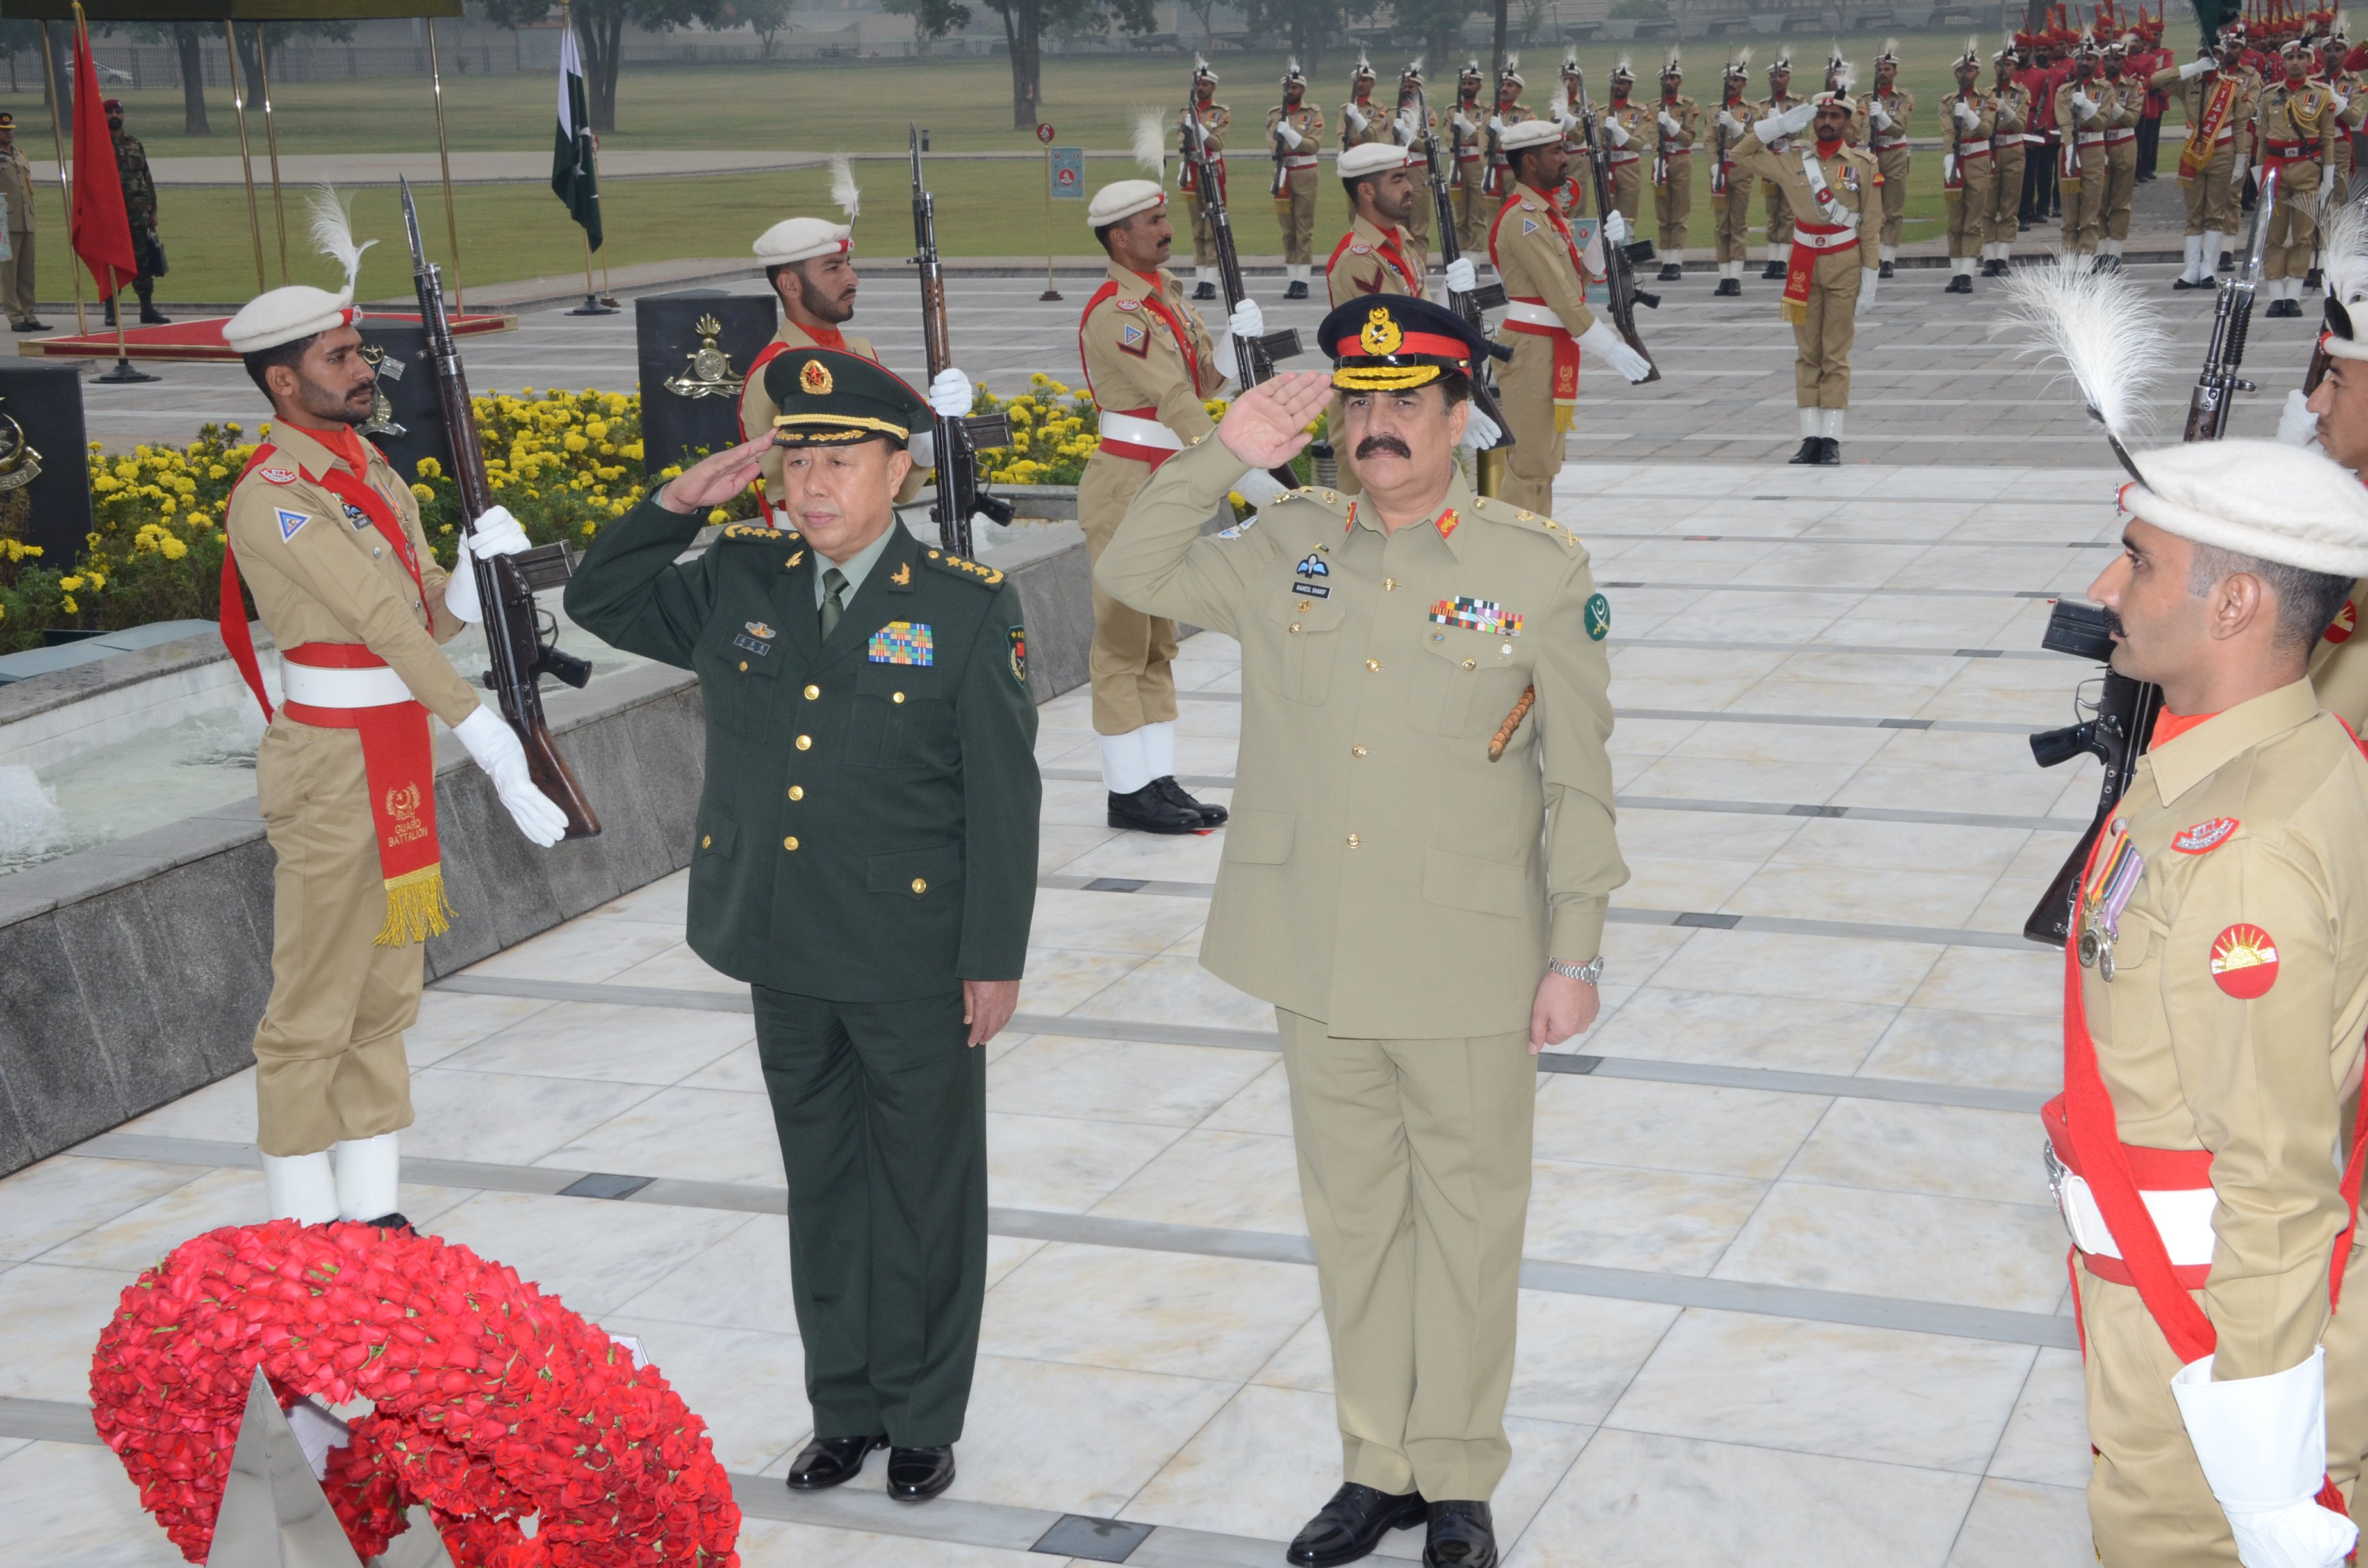 CPEC is equally beneficial to both China and Pakistan, says Gen Fan during meeting with COAS